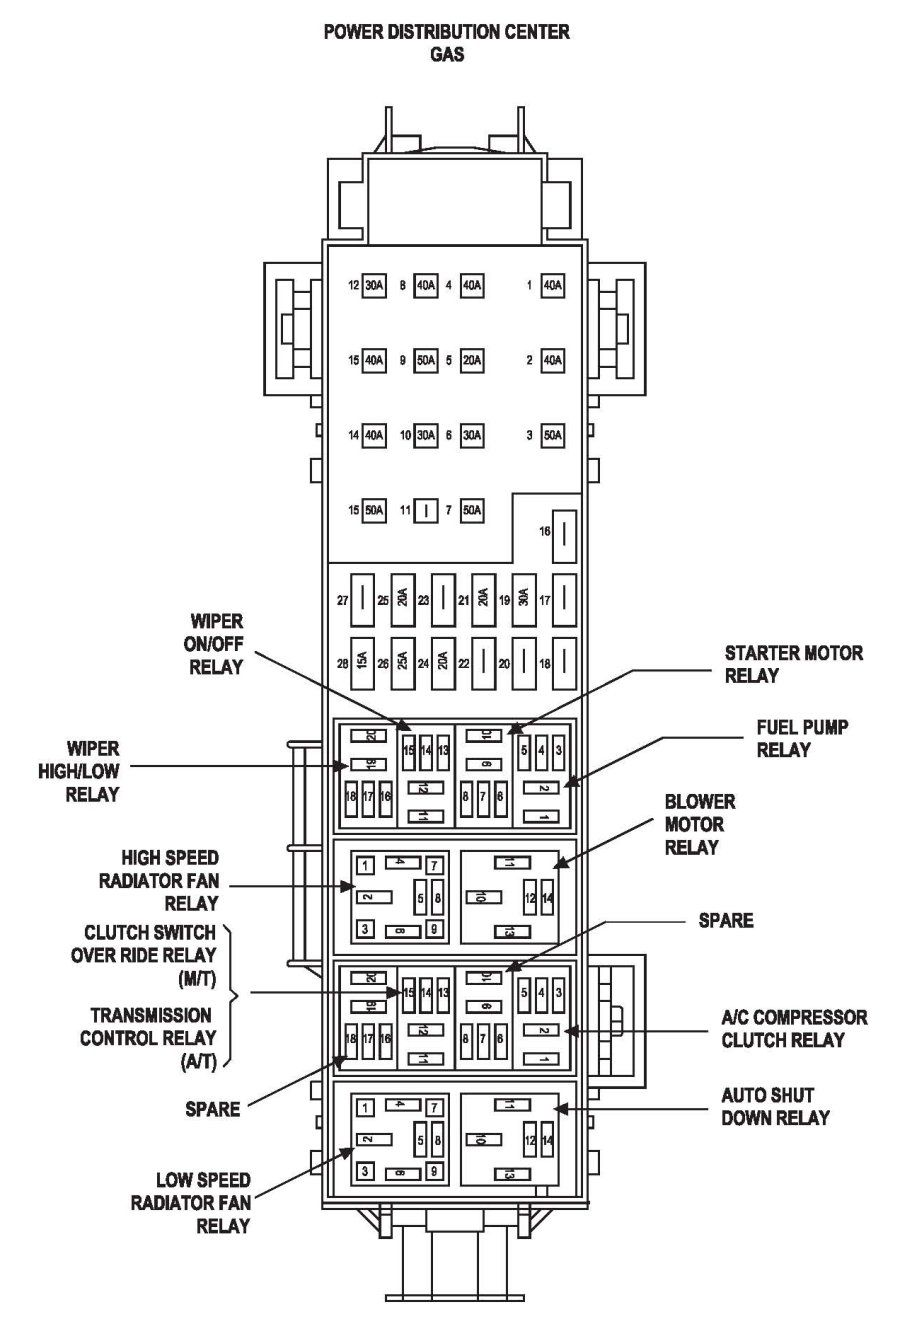 b3536c3739783eb19f827744cc42c3c4 jeep liberty fuse box diagram image details jeep liberty 2010 Jeep Liberty Fuse Box Location at readyjetset.co